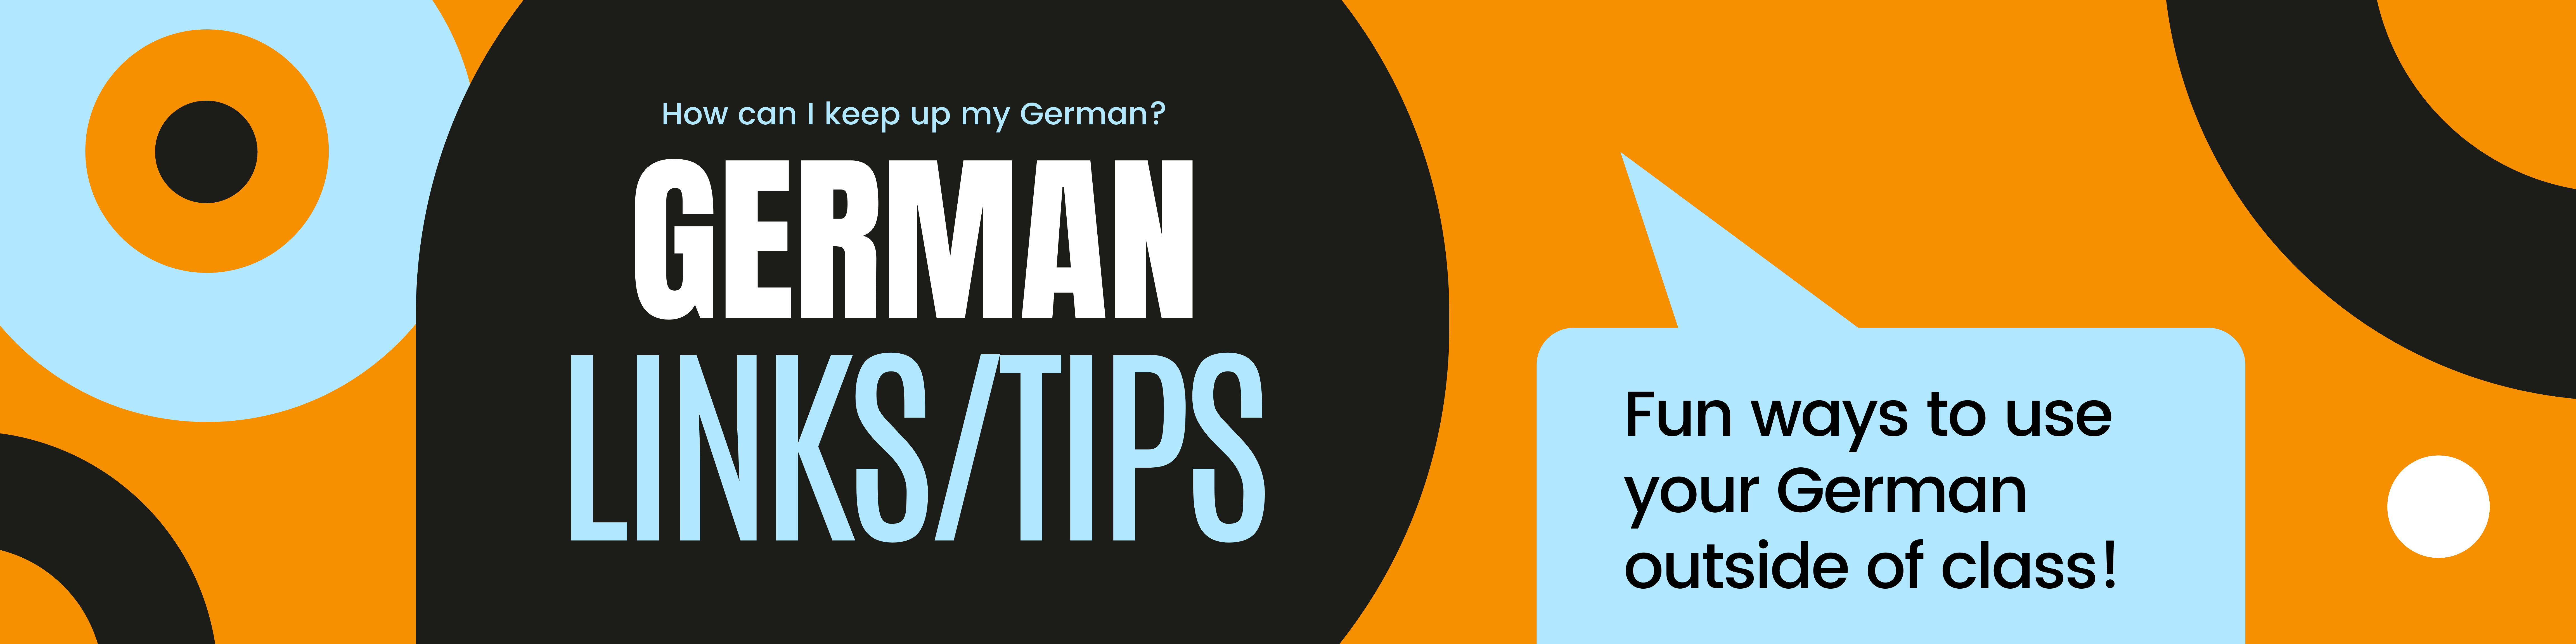 German Links/Tips Fun ways to use your German outside of class